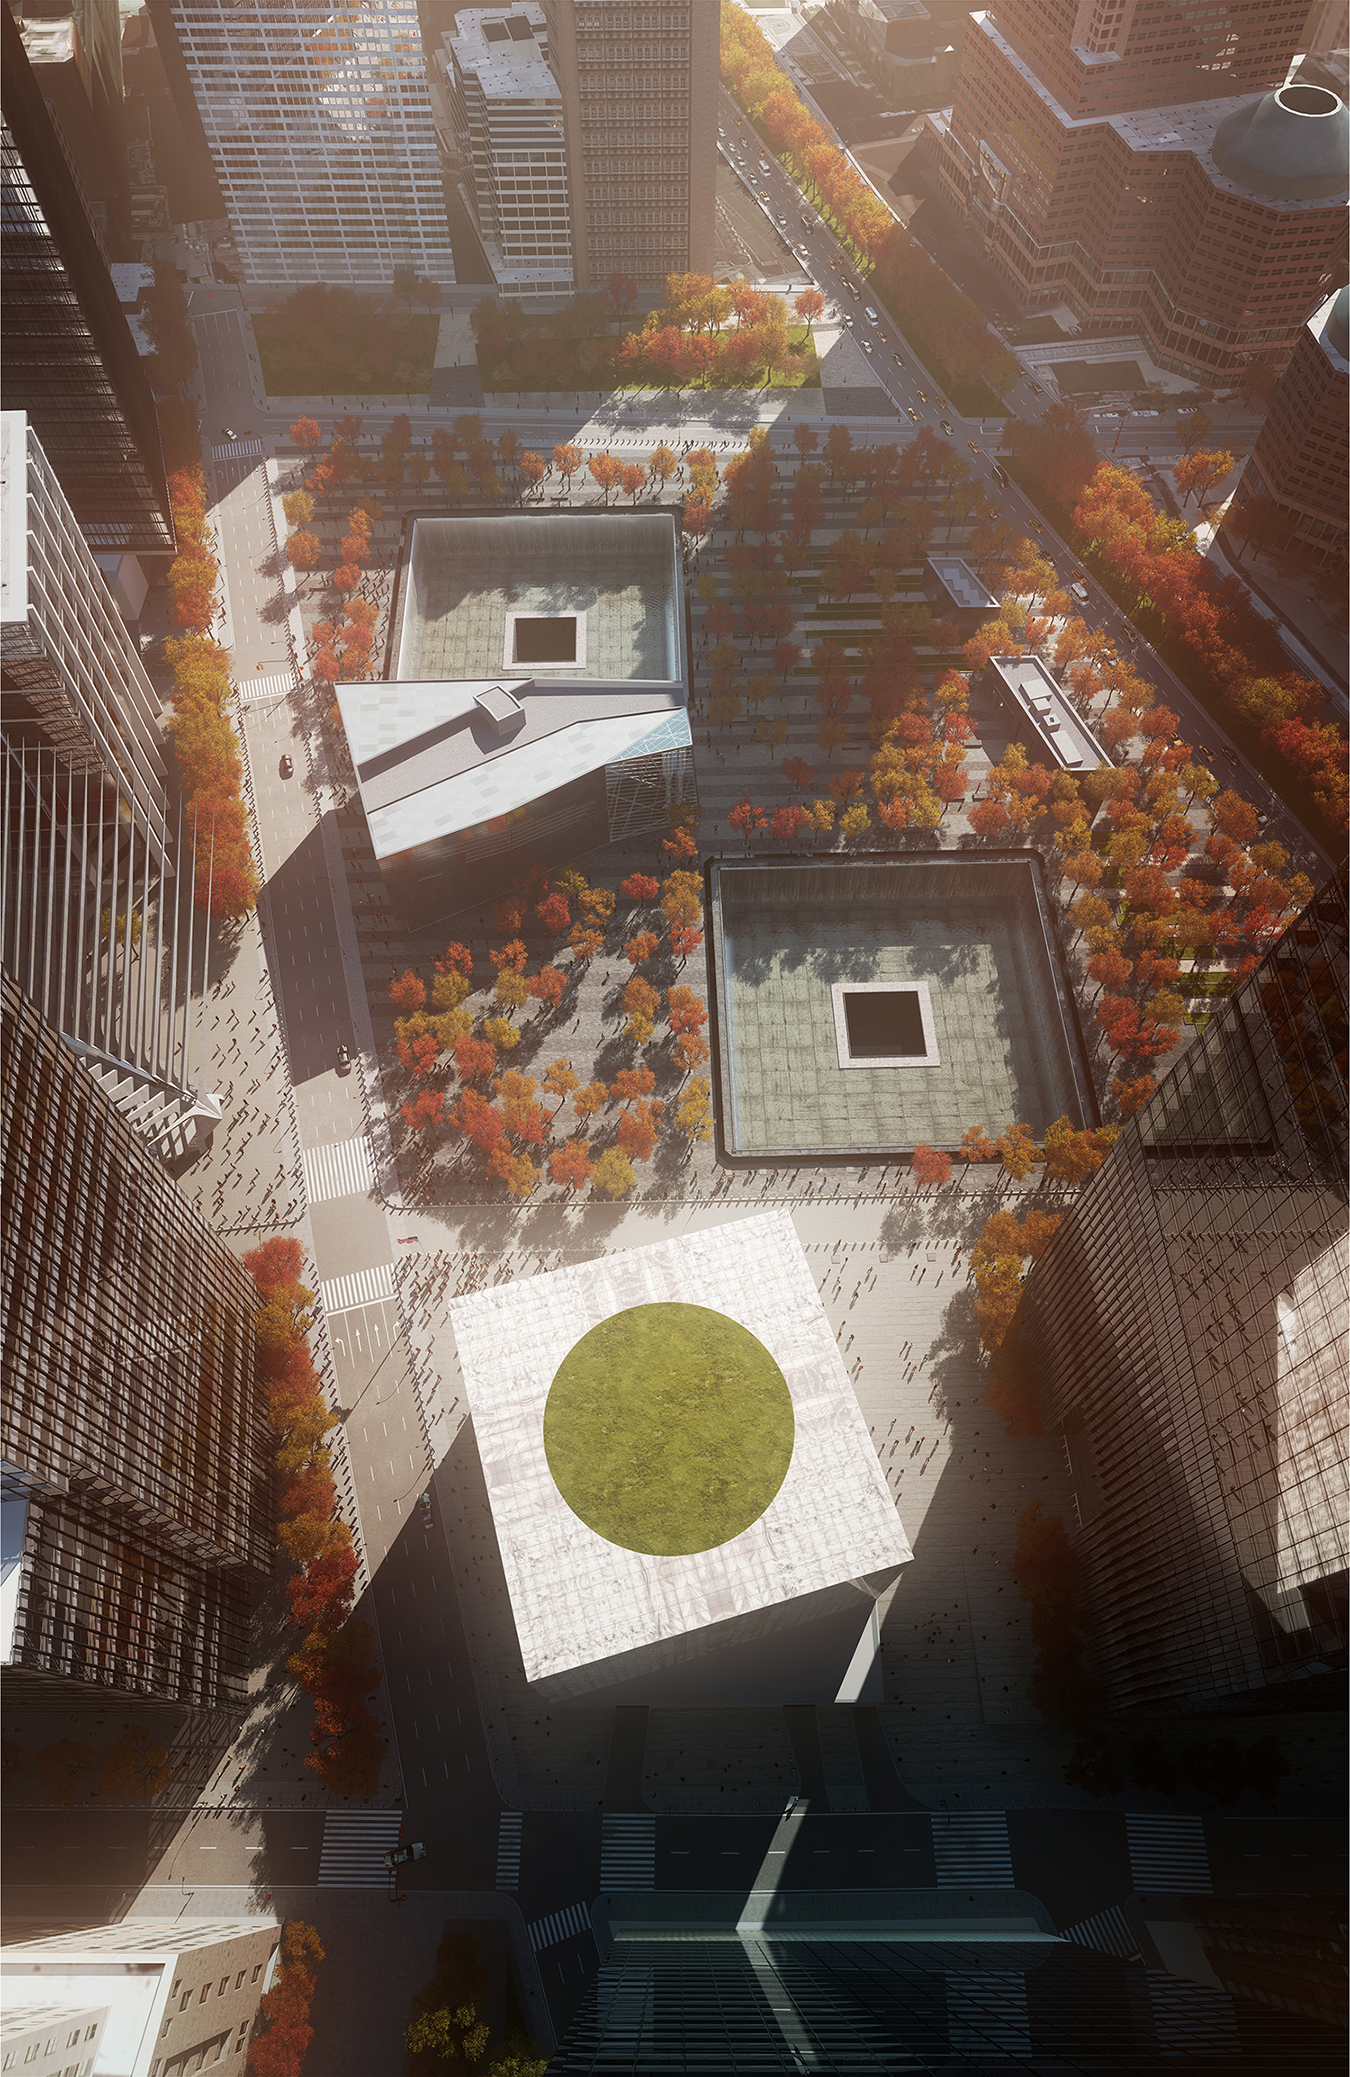 Aerial rendering of the Perelman Performing Arts Center at the World Trade Center. Rendering by K18